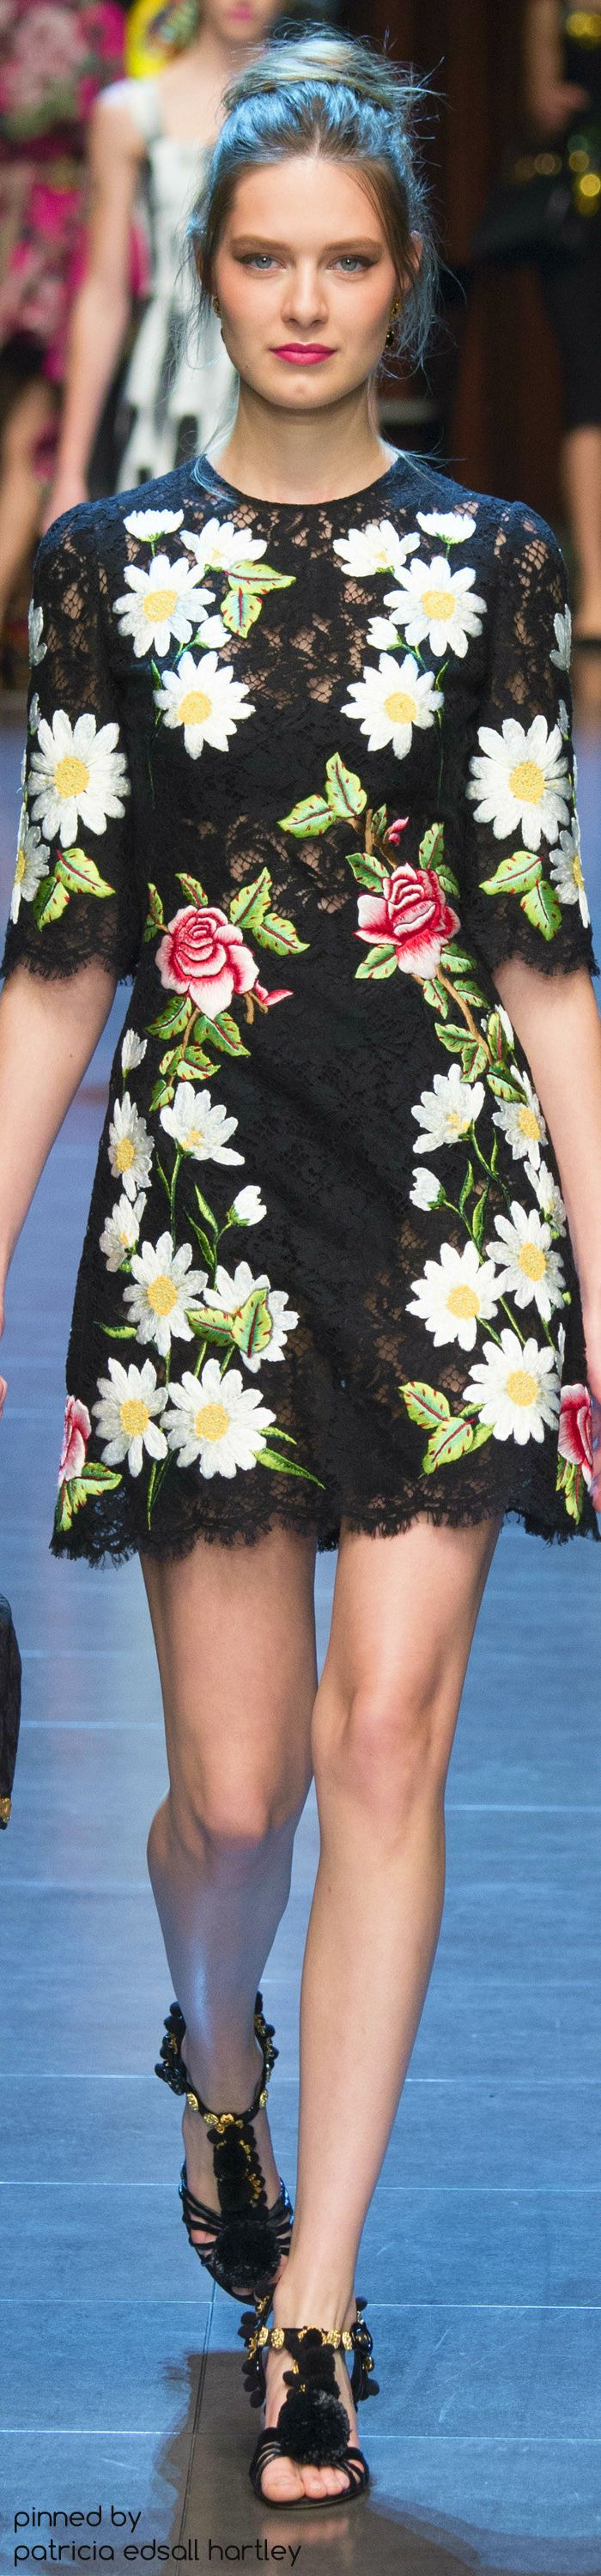 111 Best Dolce And Gabbana Images On Pinterest